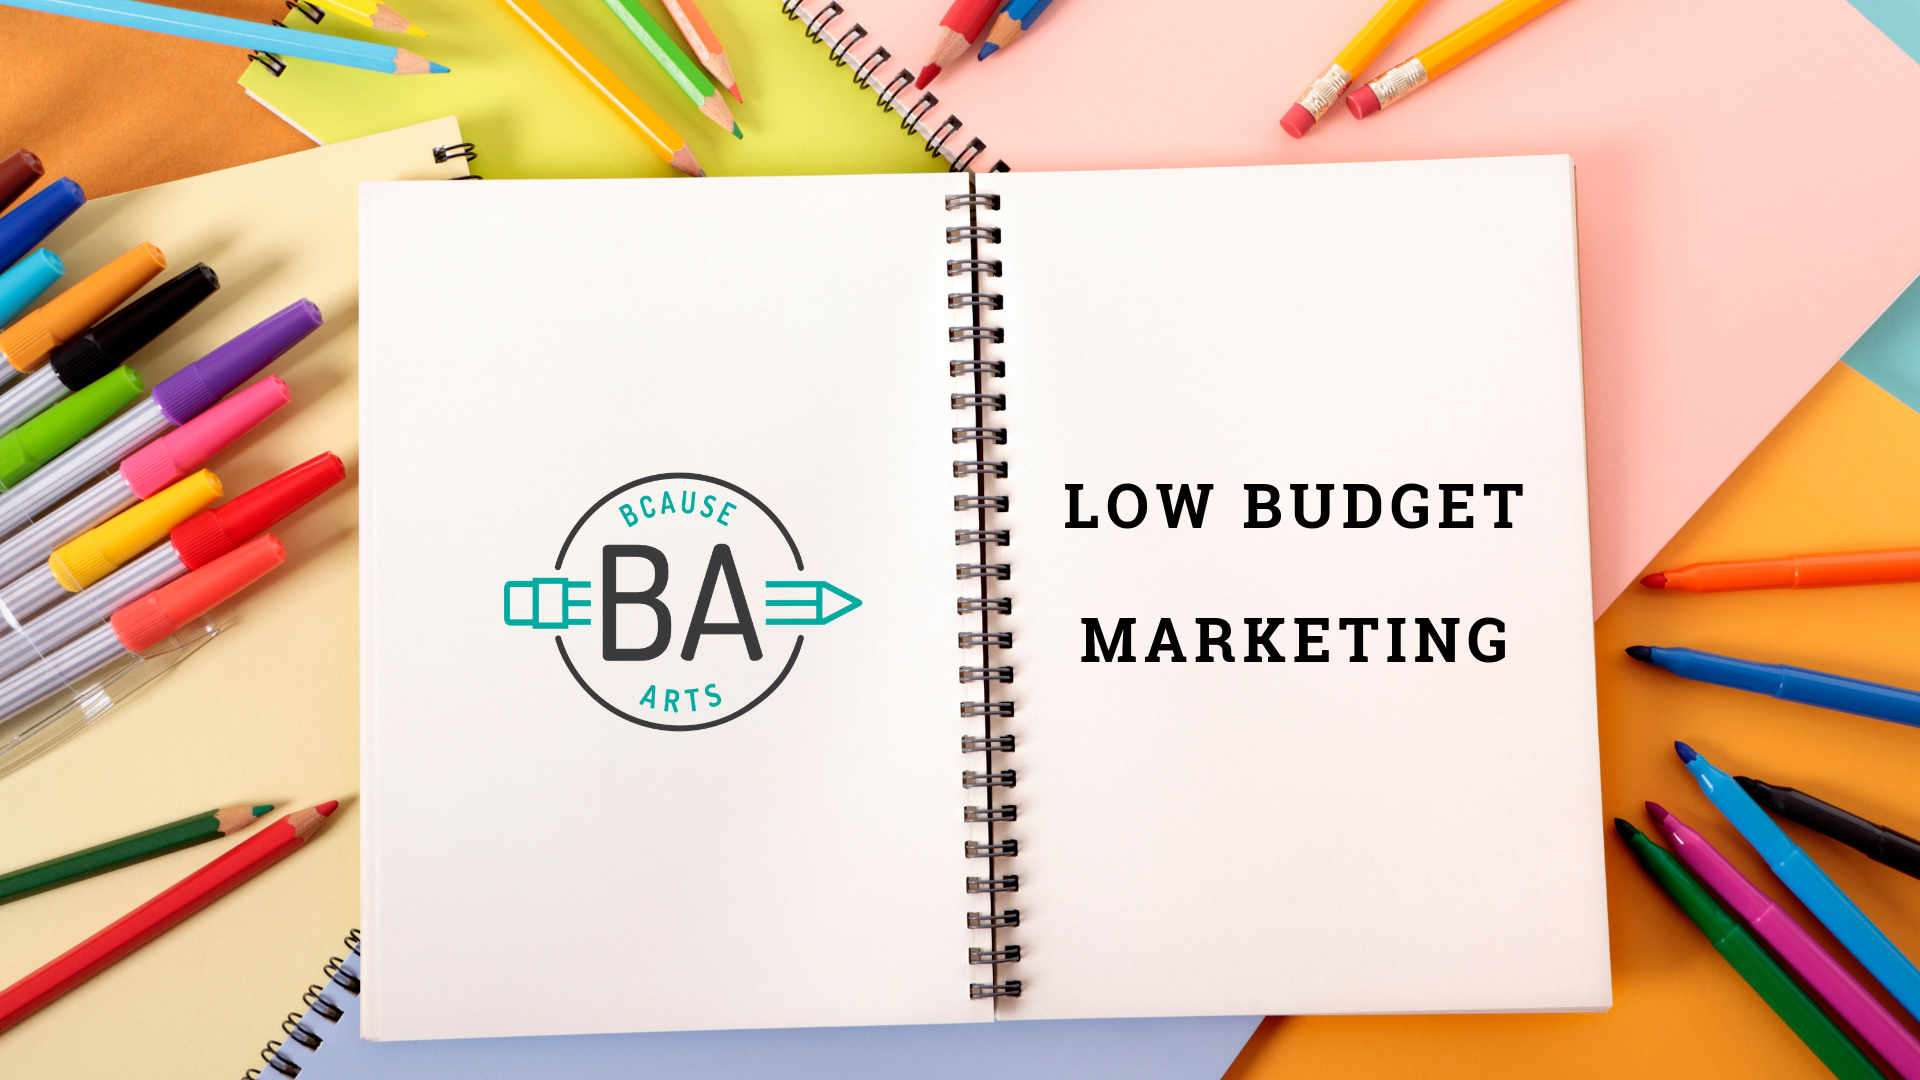 Low Budget Marketing Workshop - 12 August 2019 | 6-9pm   Ideal for Melbourne performers, producers, theatre makers, visual artists and creative entrepreneurs. Promote your next creative event without breaking the bank.  Book now!